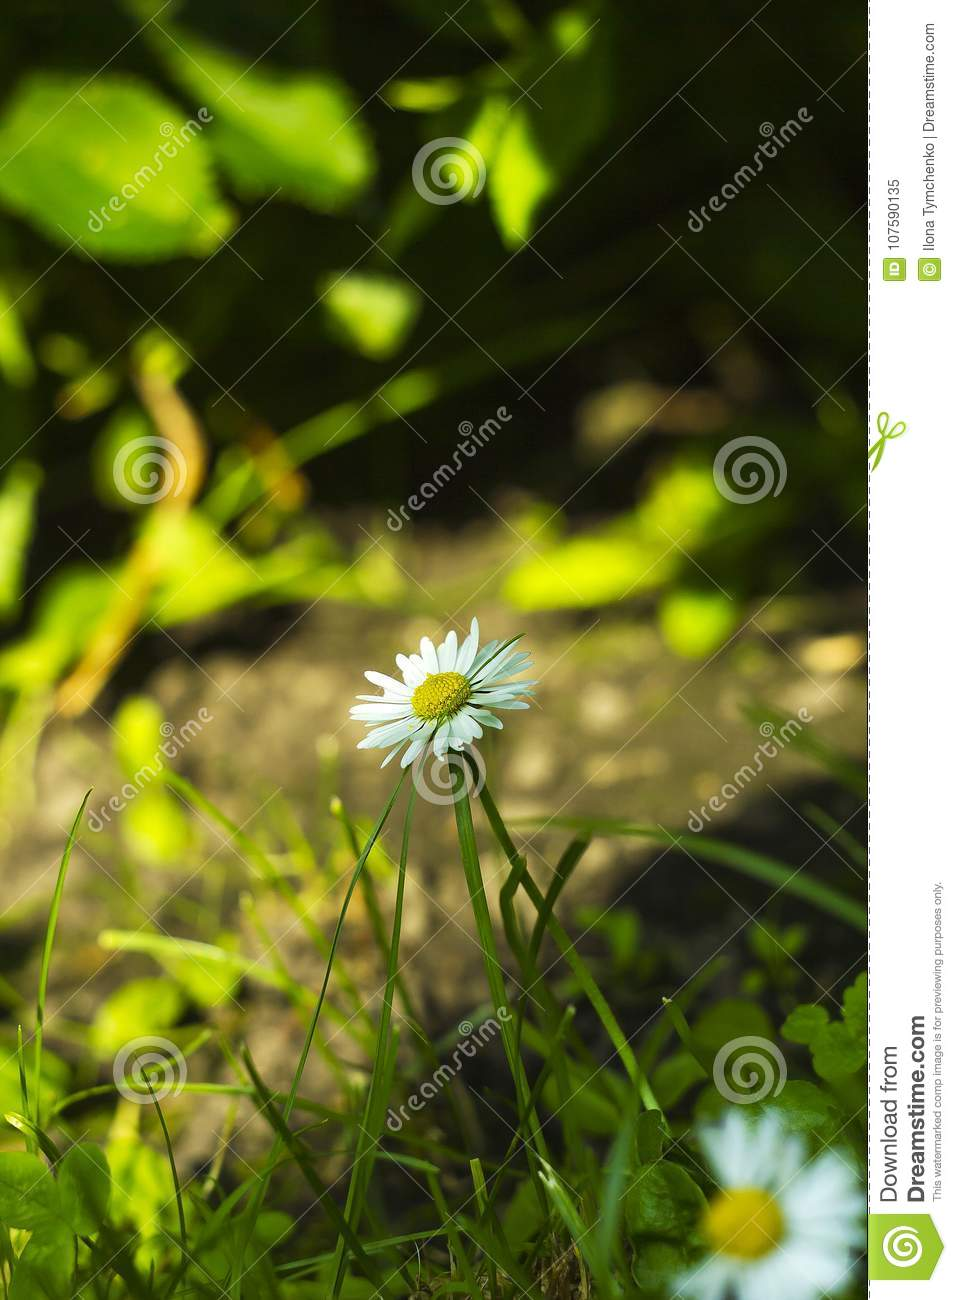 Small White Field Flower Bellis Perennis In Grass Stock Image